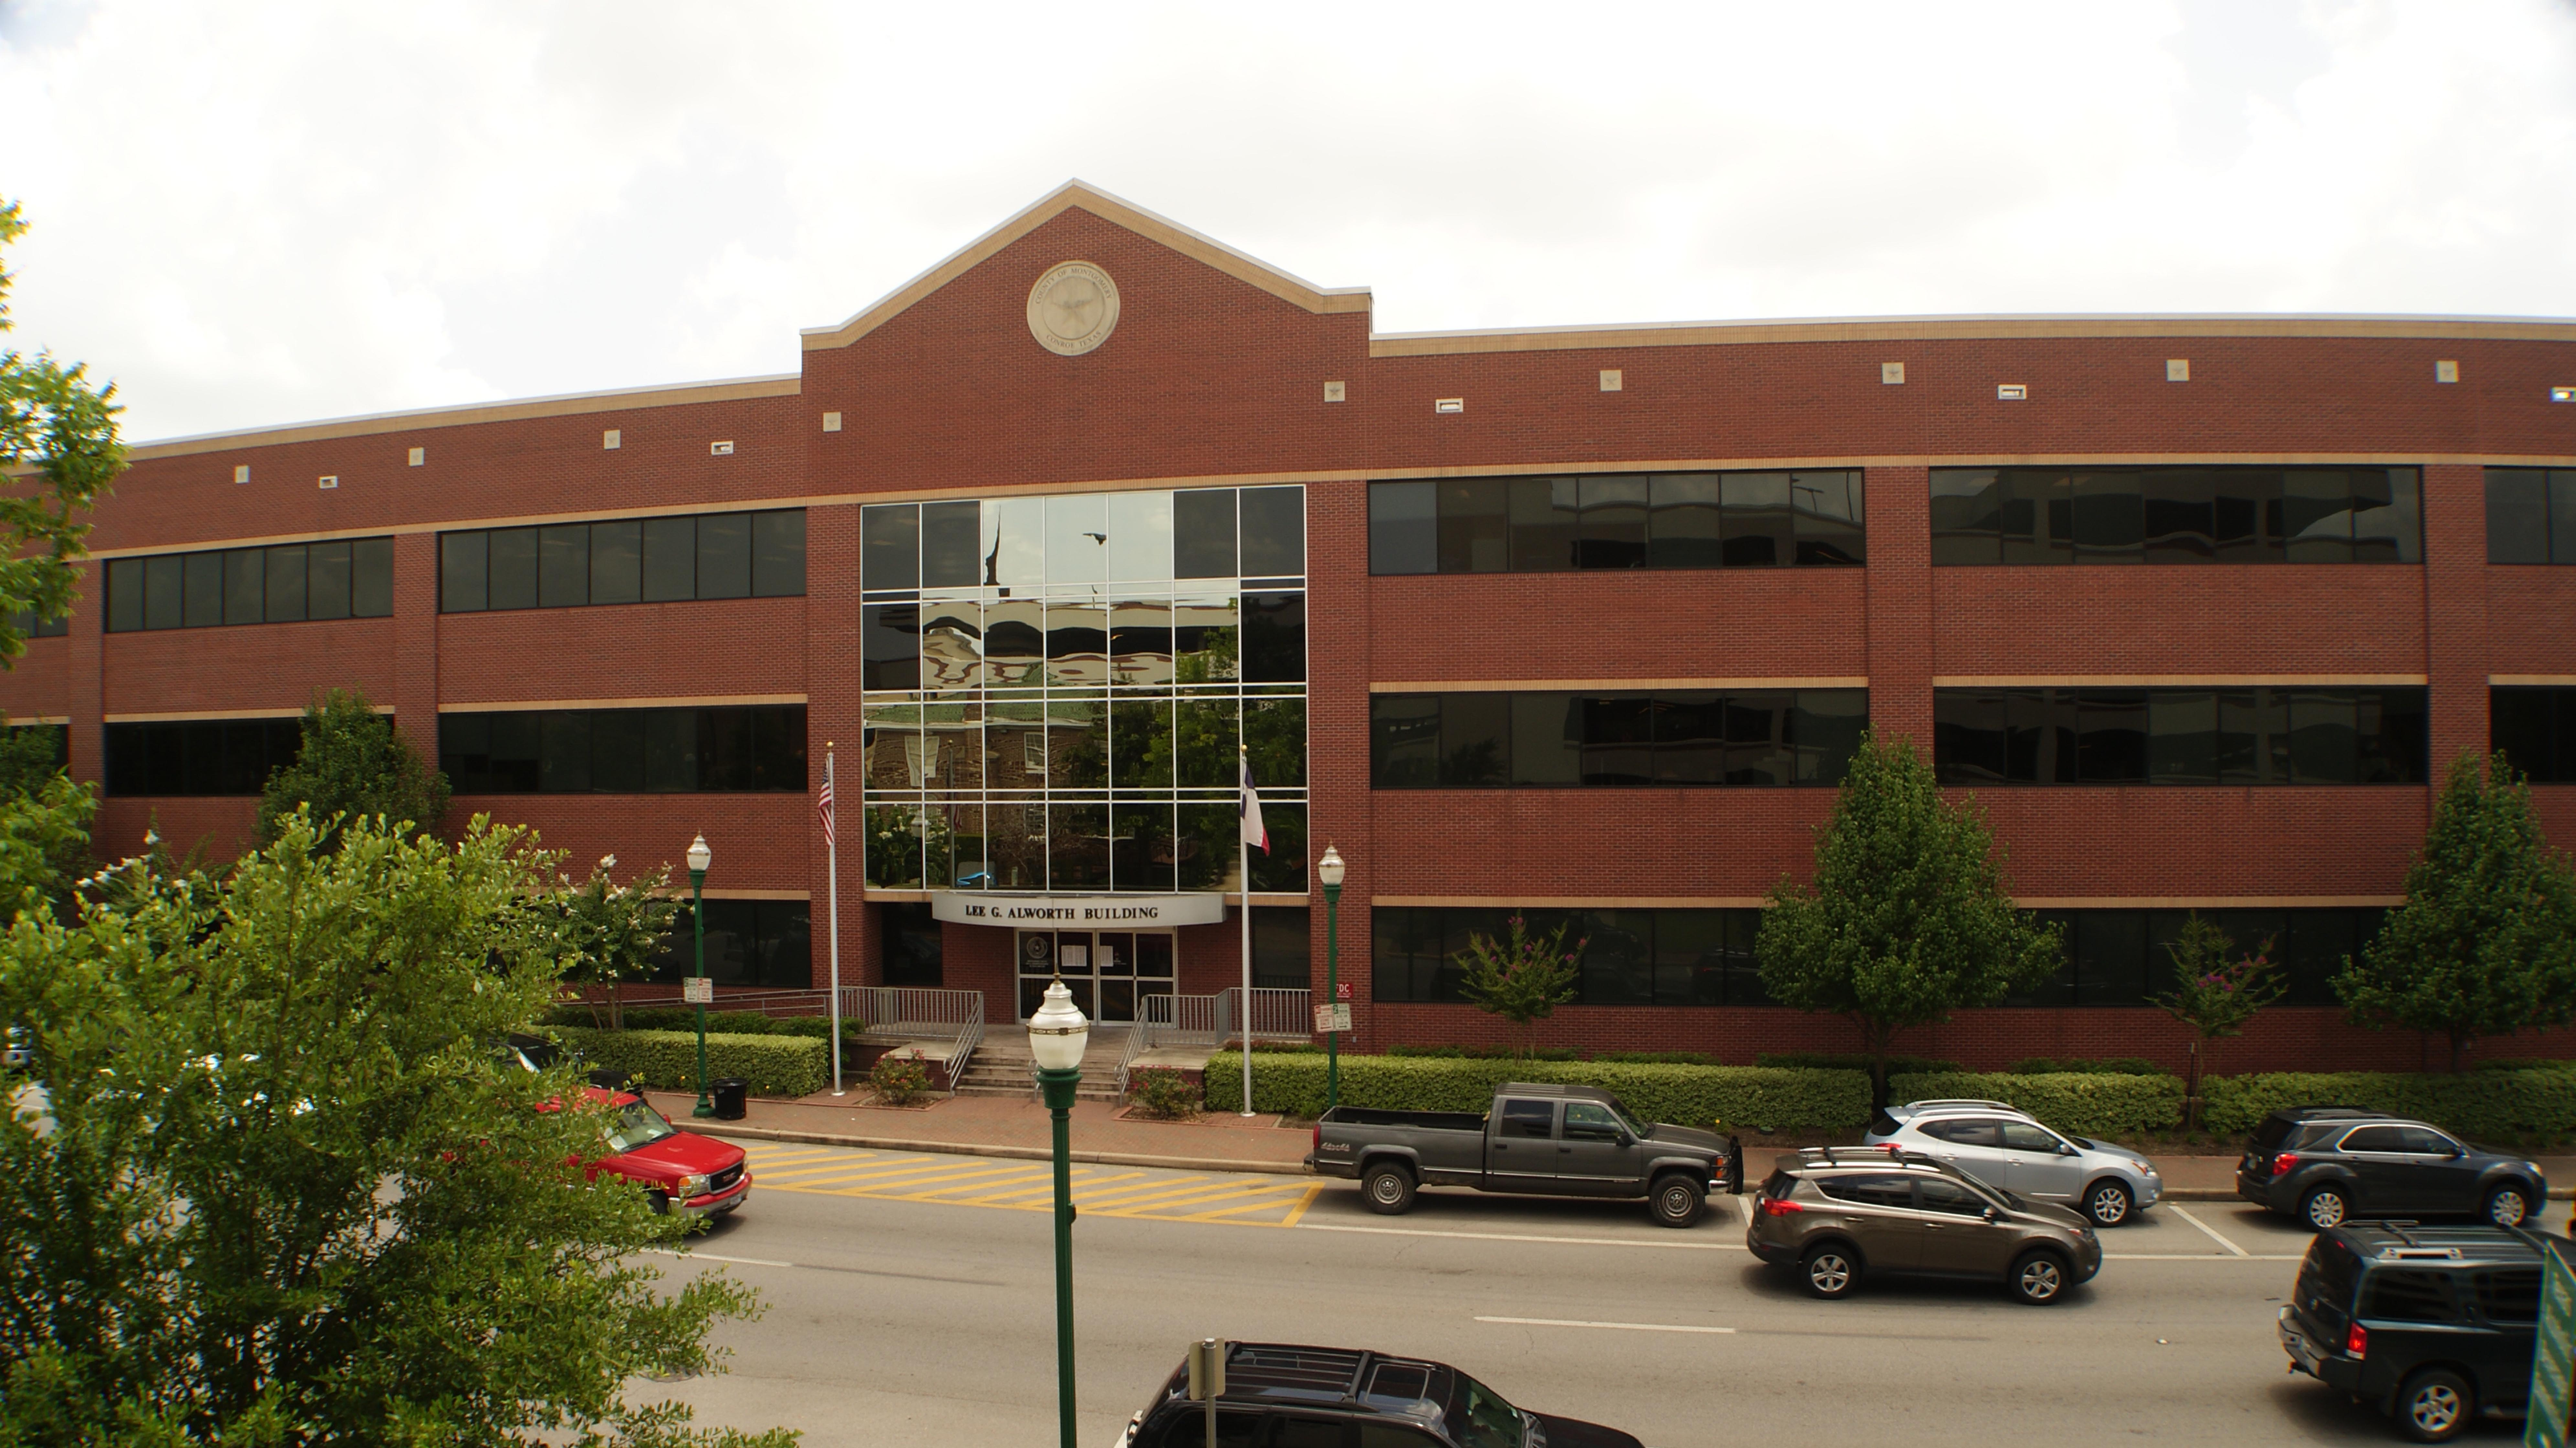 Lee G. Alworth Building